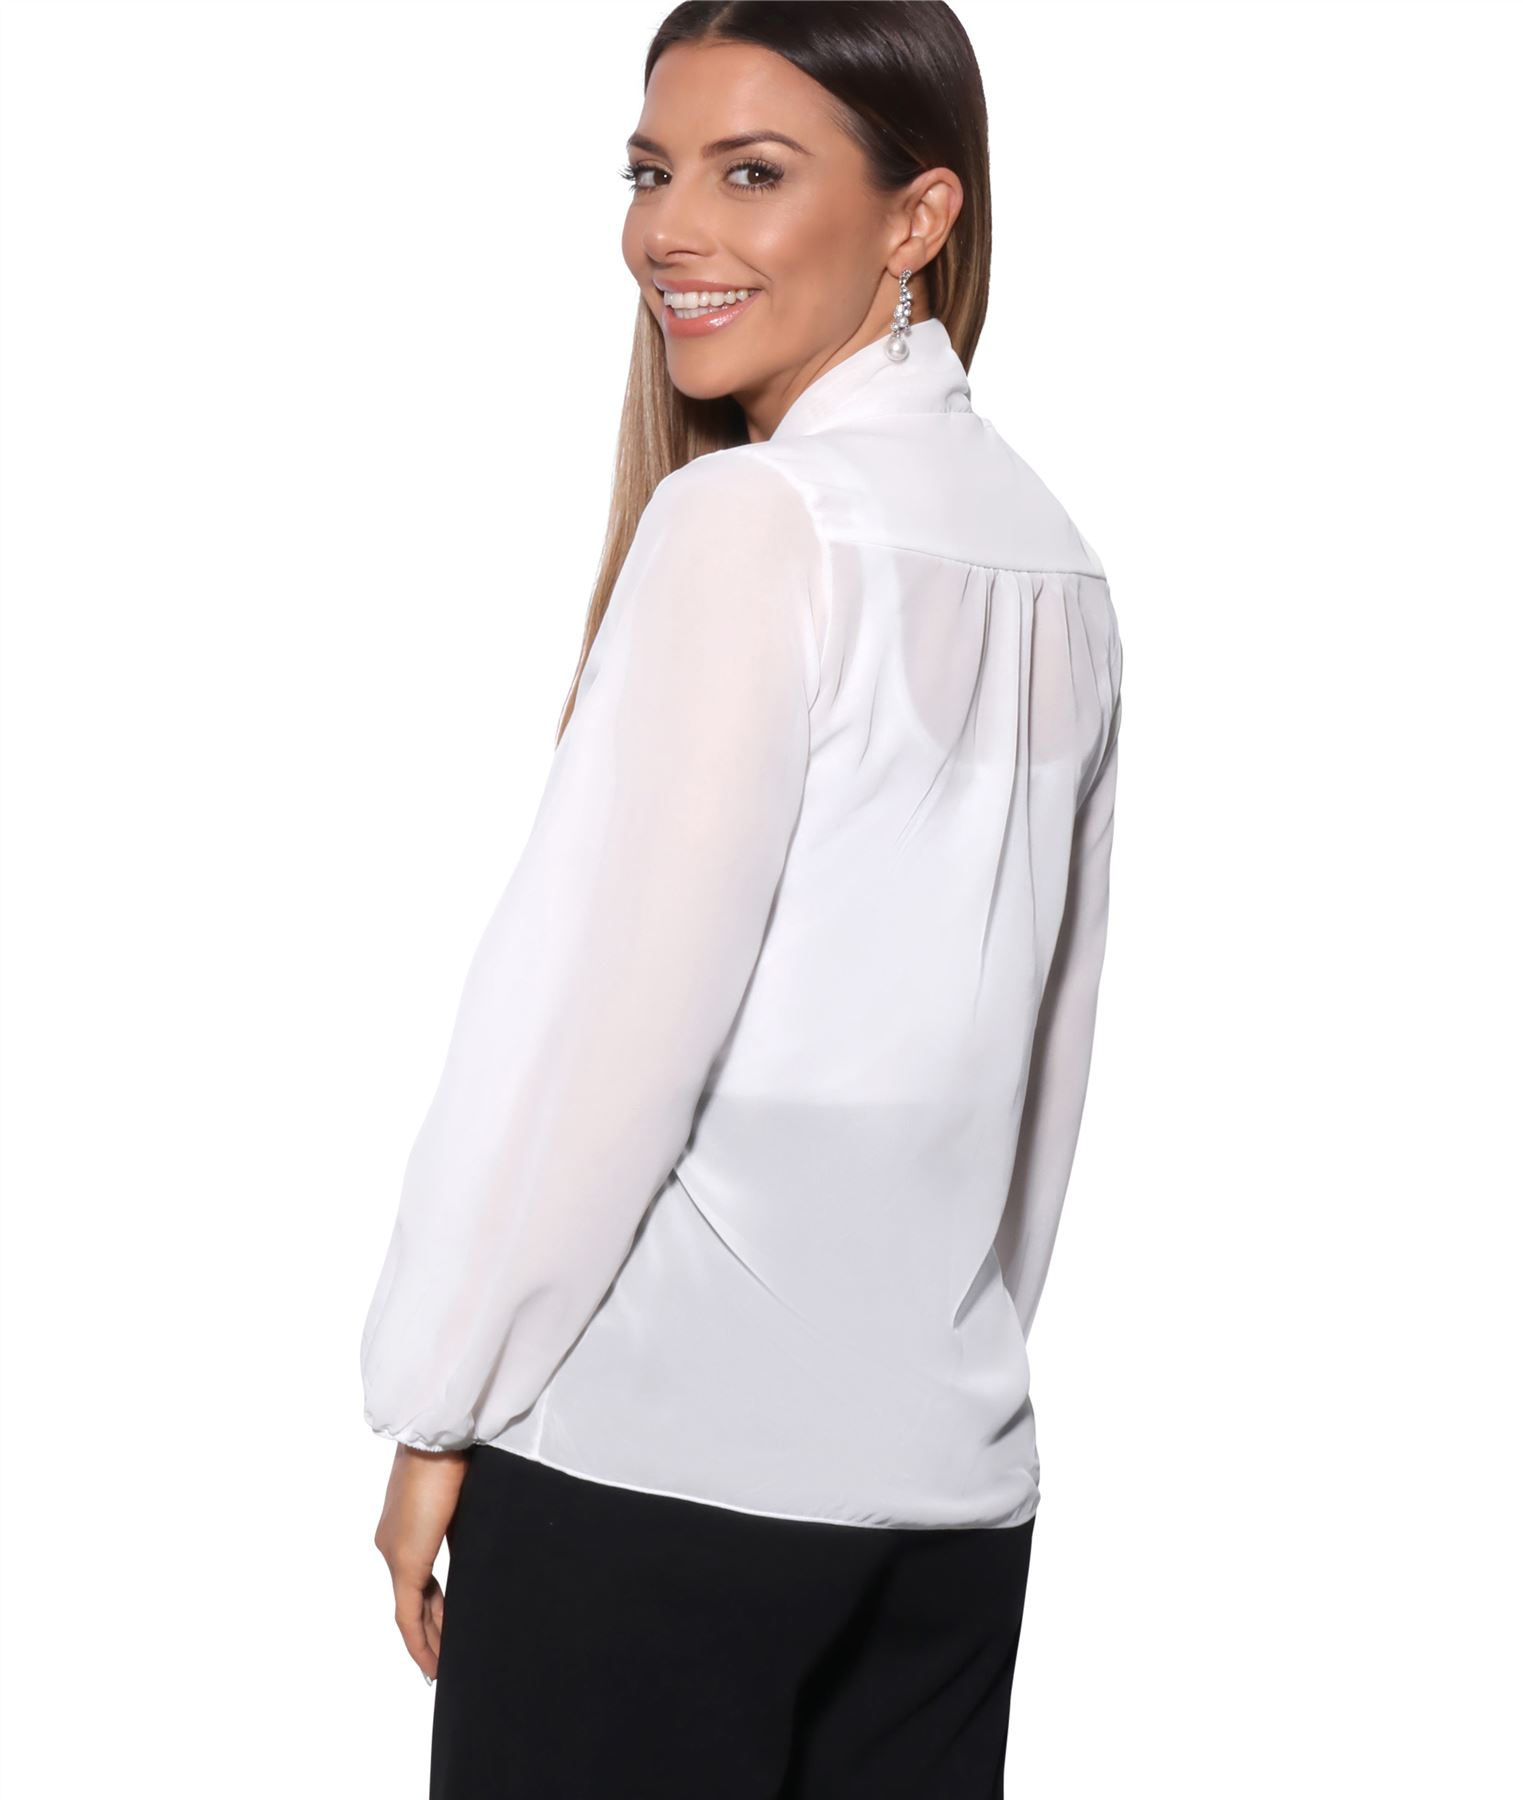 Womens-Ladies-Chiffon-Blouse-Long-Sleeve-Pussy-Bow-Top-Plain-Shirt-Office-Party thumbnail 9